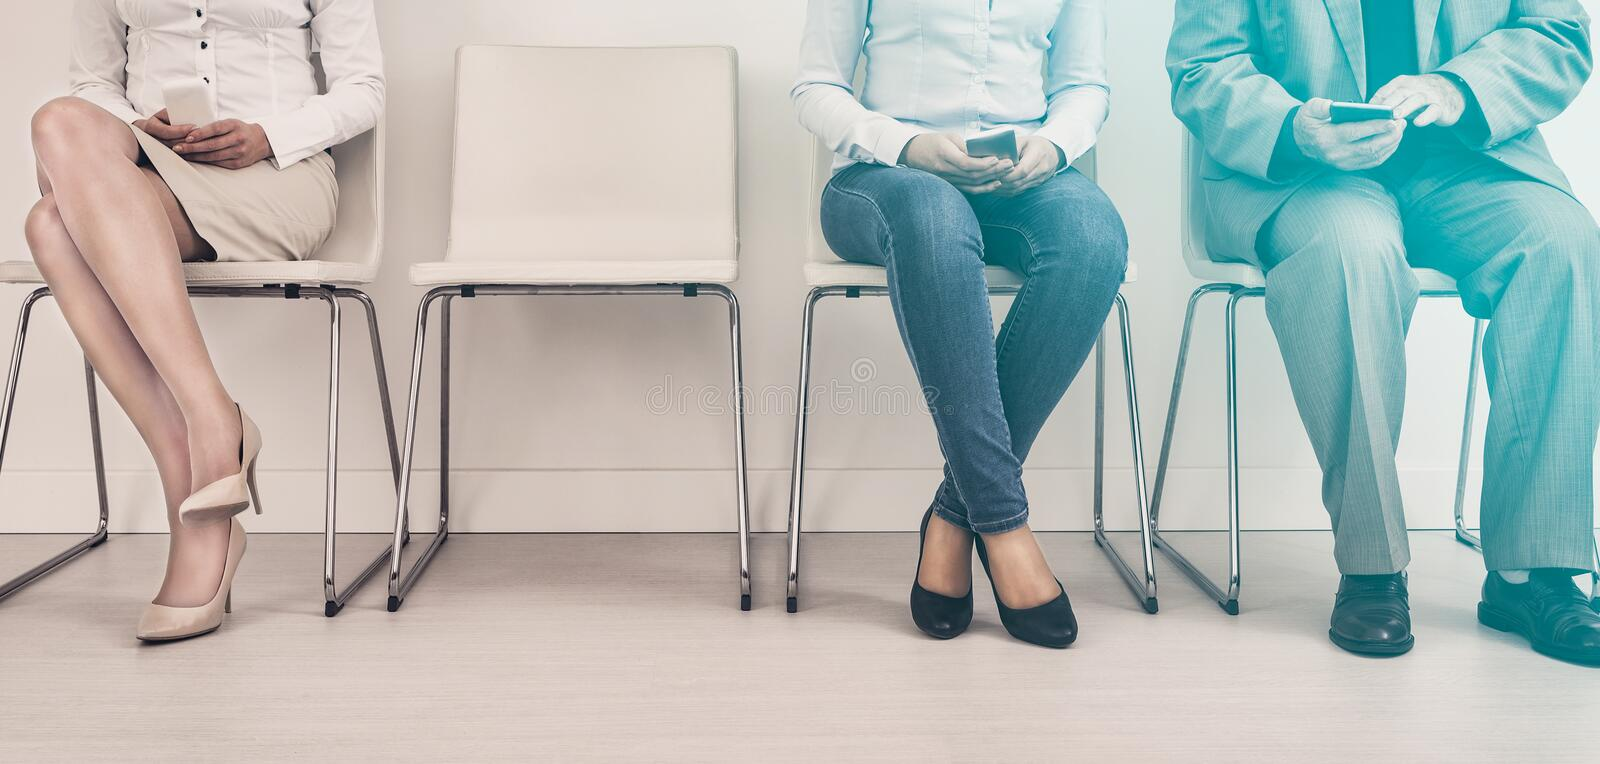 Recruitment recruiting recruit hiring hire - concepts. Recruitment recruiting hire recruit hiring recruiter interview employment job human room stress stressful royalty free stock photo